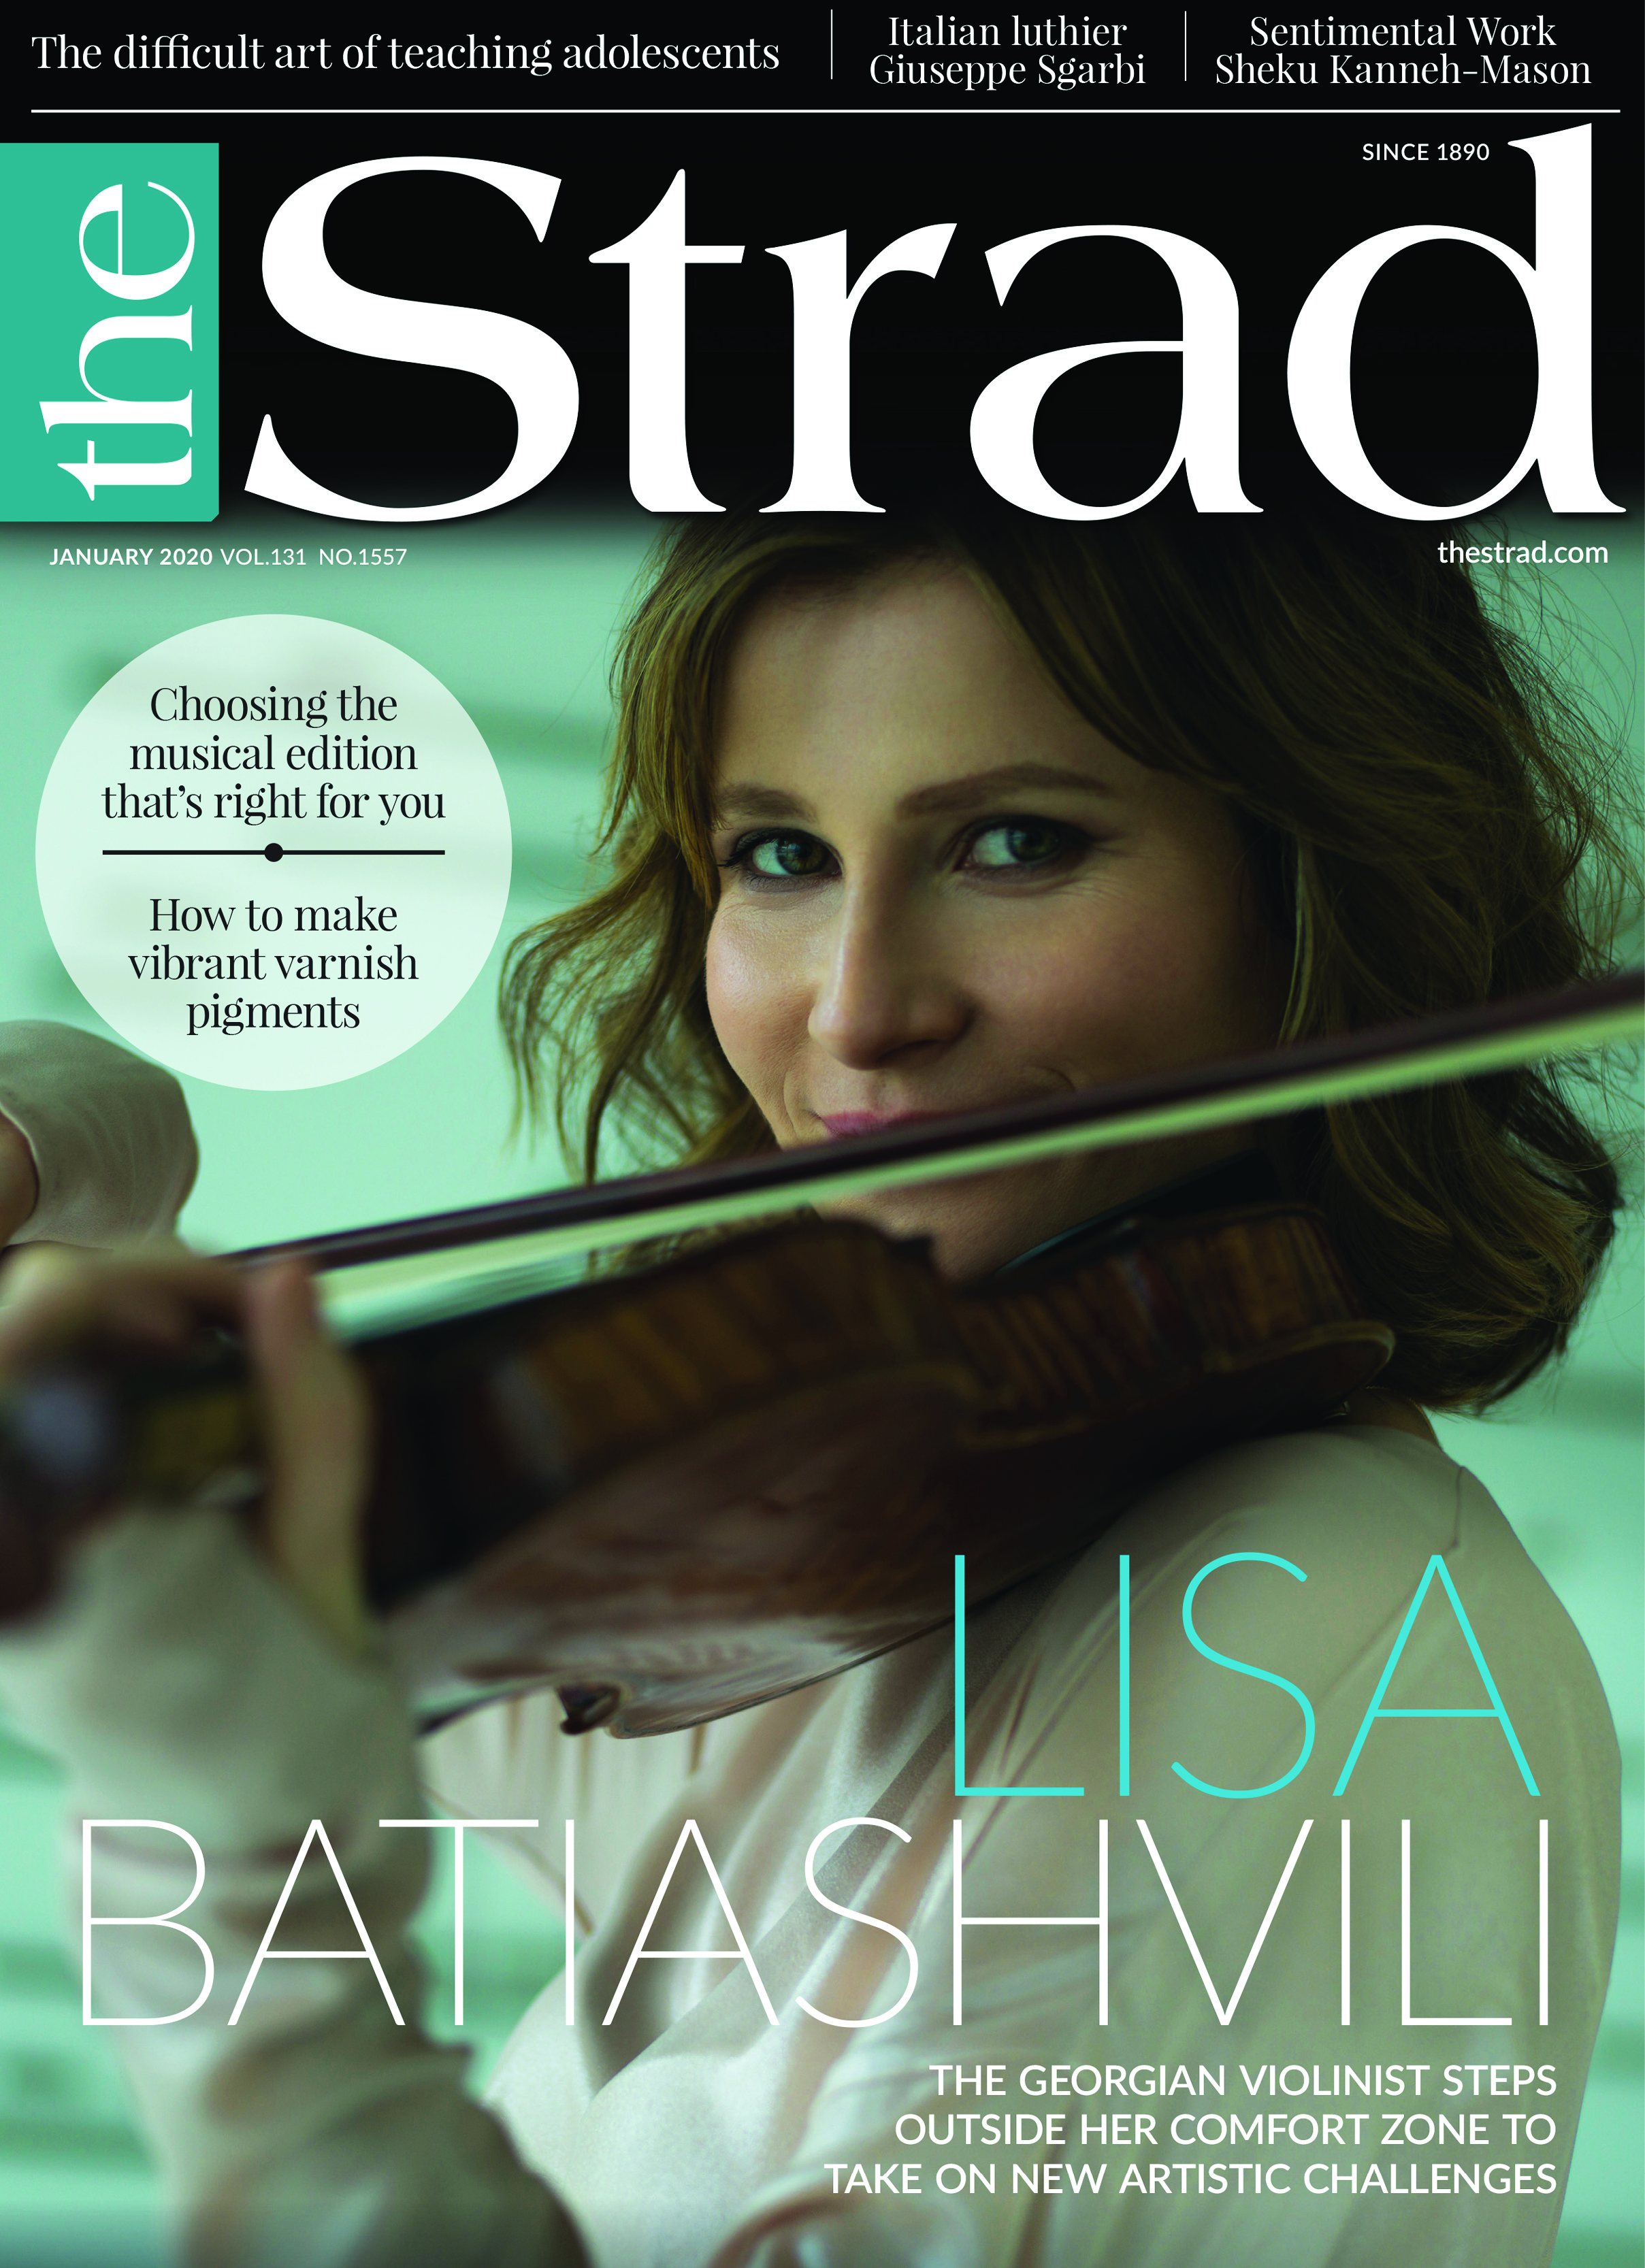 Lisa Batiashvili: The Georgian violinist steps outside her comfort zone to take on new artistic challenges | January 2020 issue | The Strad